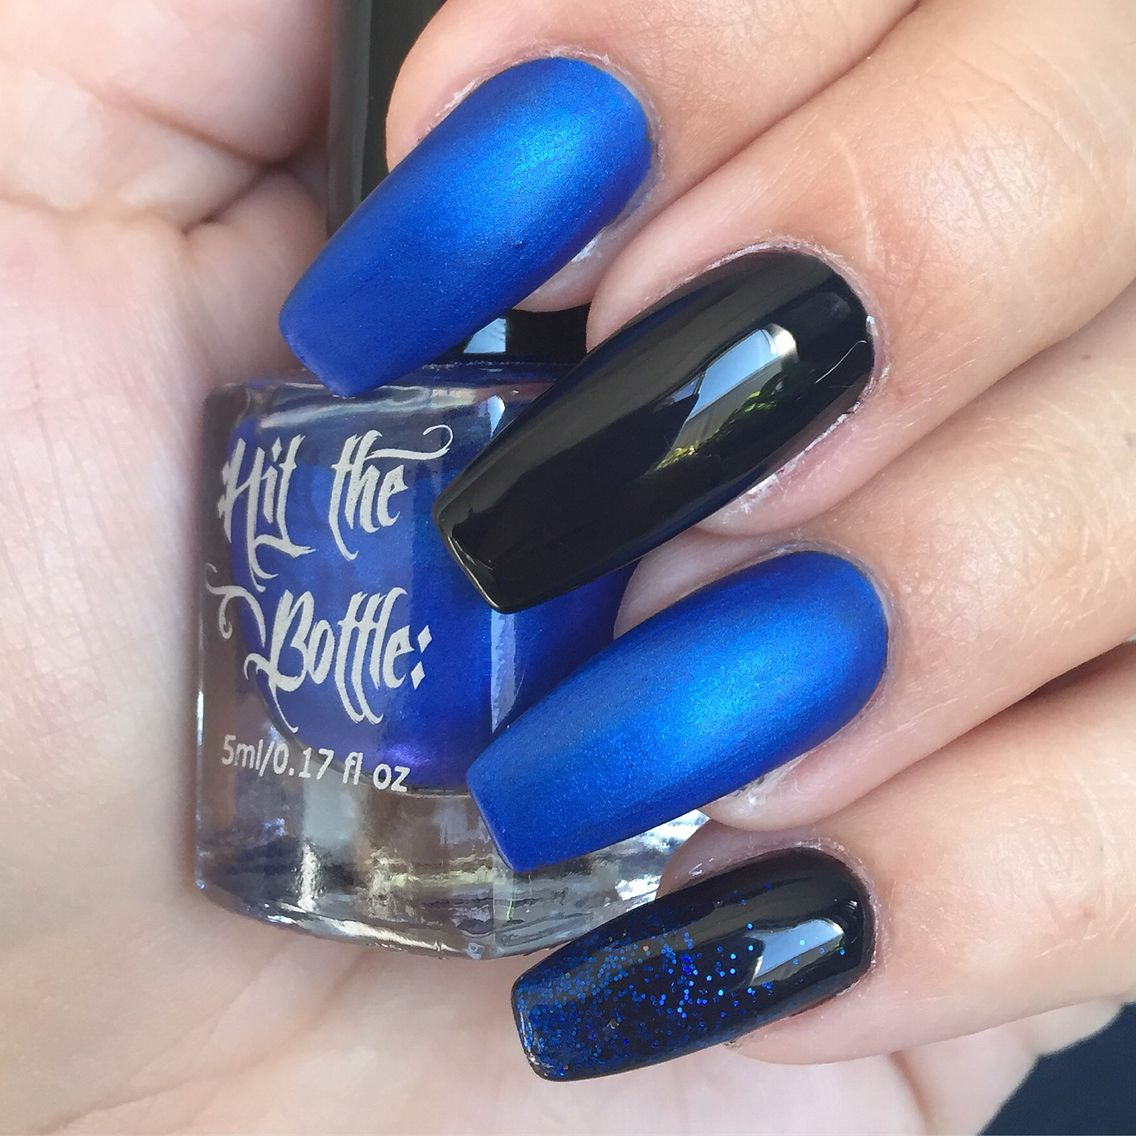 Fluid nail design acrylic nails black gel polish, cobalt blue nail ...